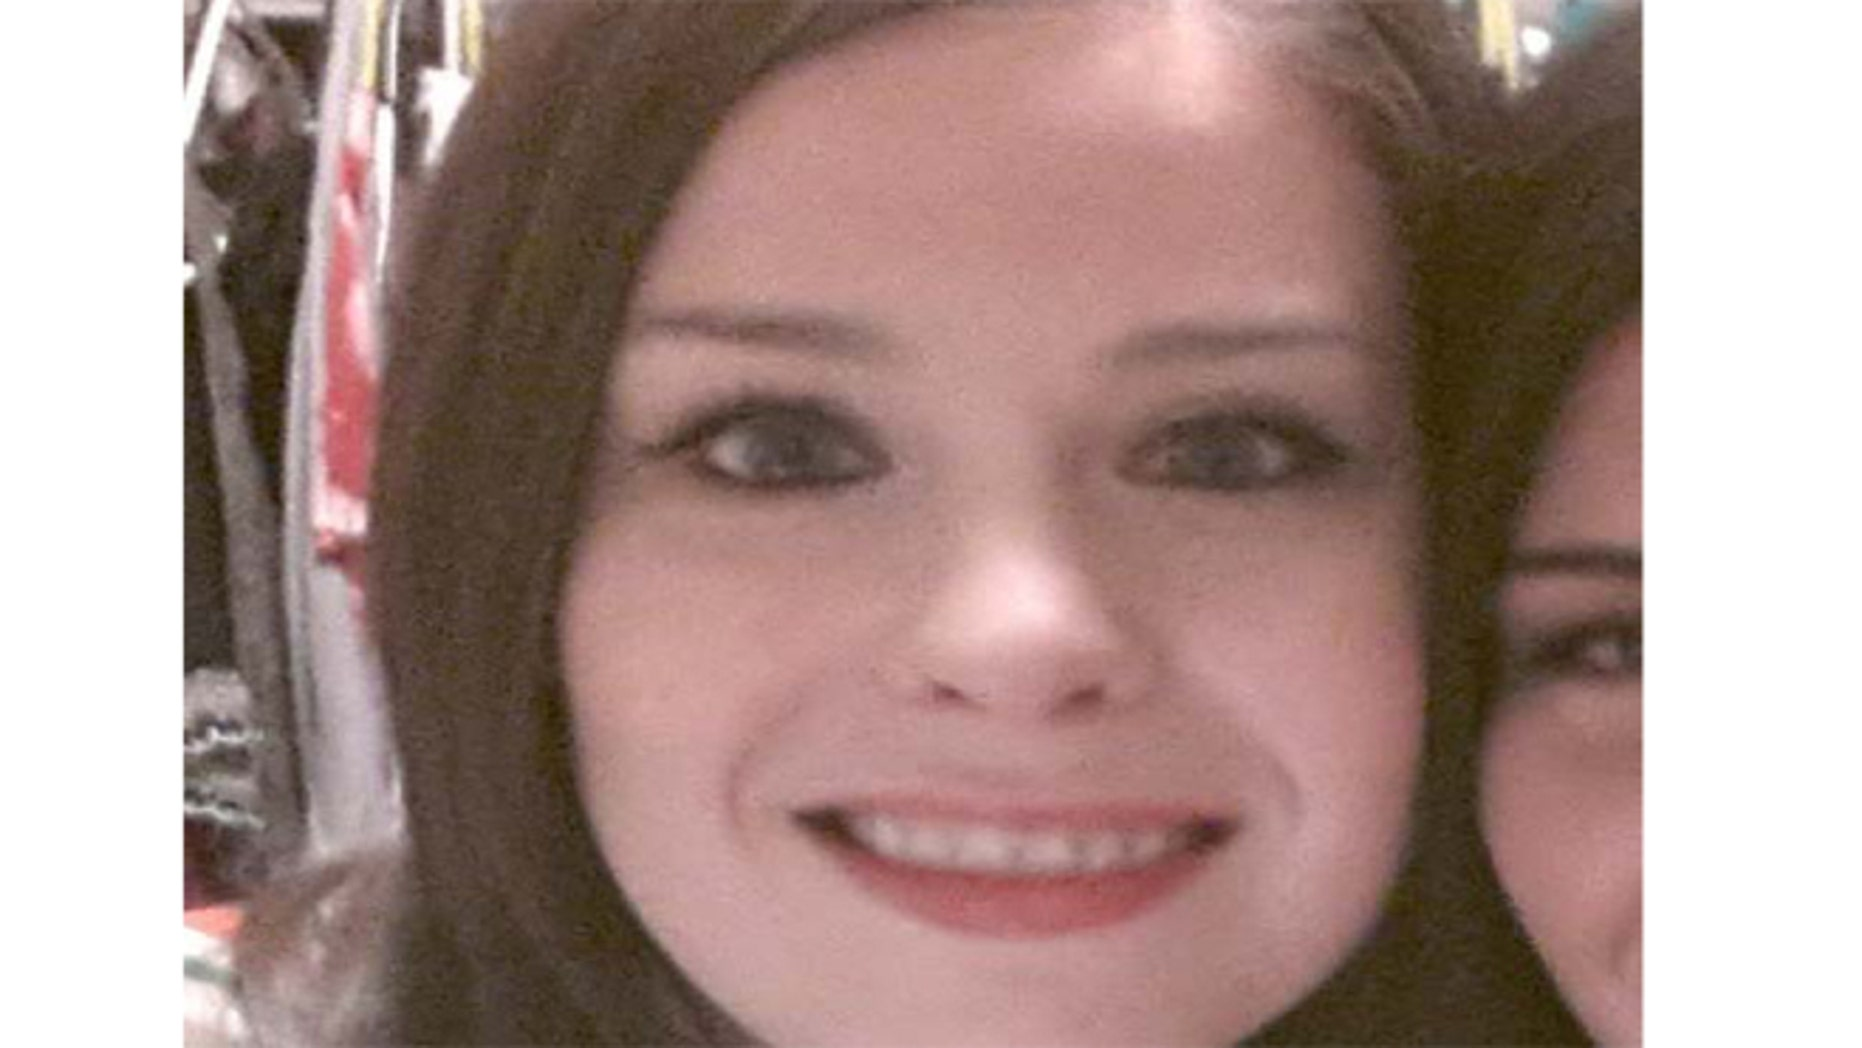 This undated photo shows Kelly Dwyer who was reported missing more than two weeks ago.